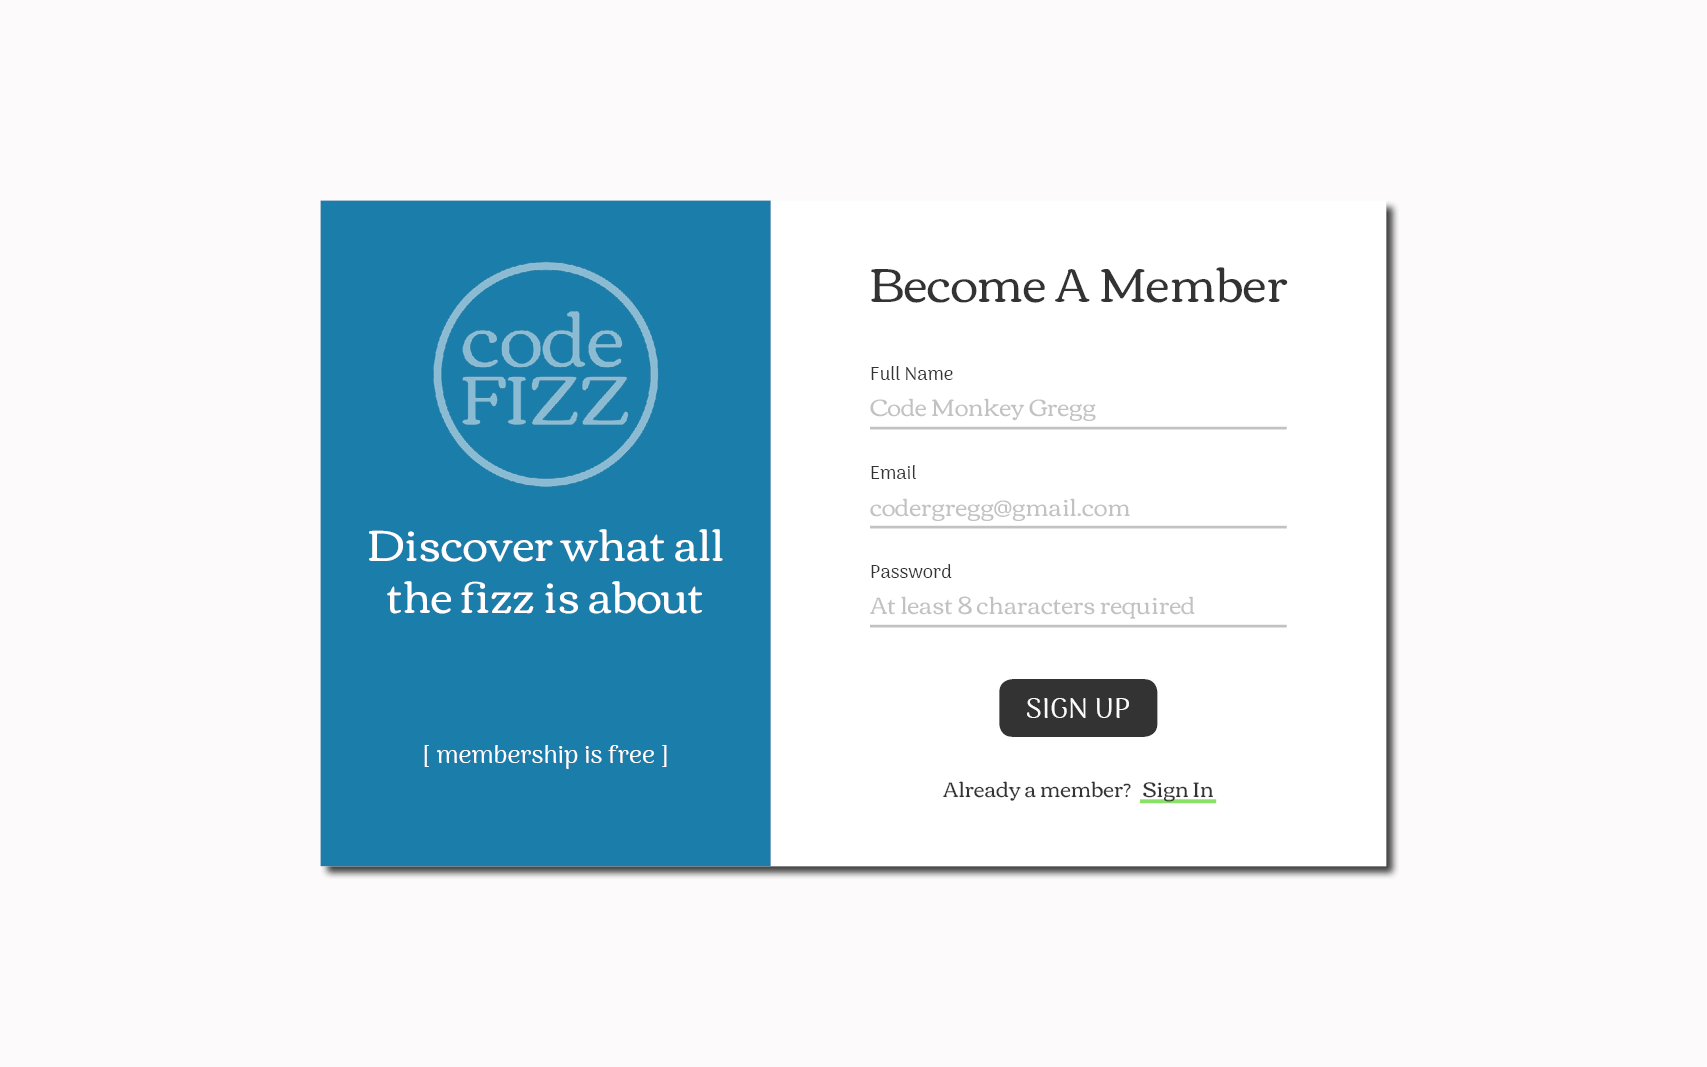 This is the UI/UX design for the sign up page of the Code Fizz web application.